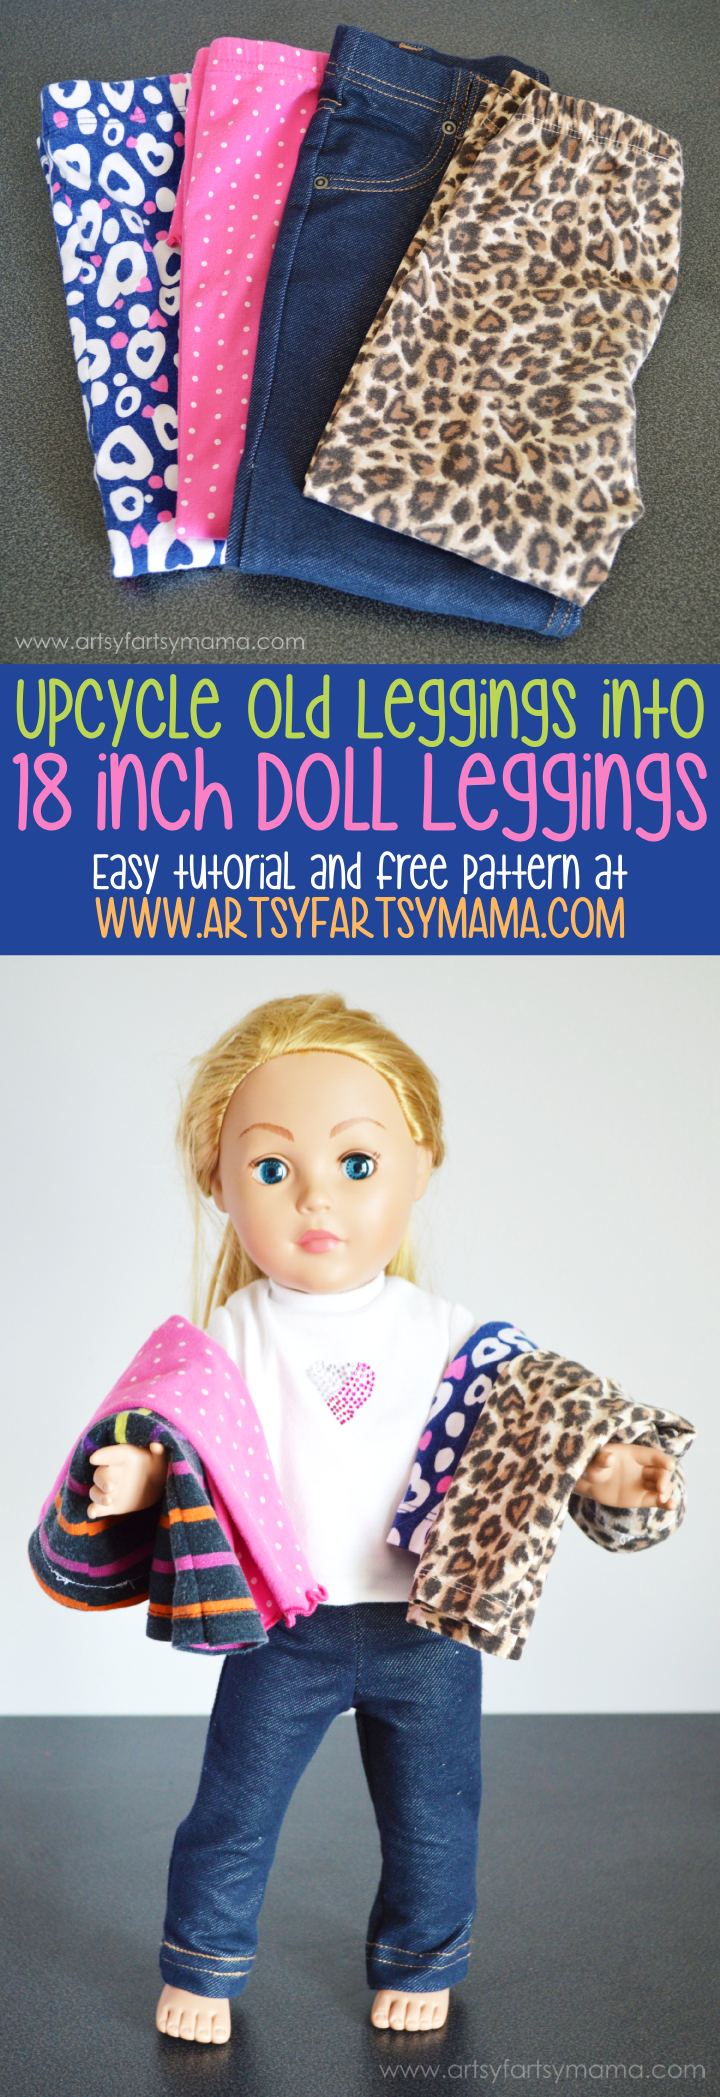 Easy 18 Inch Doll Leggings Tutorial | Puppenkleidung, Puppenkleider ...